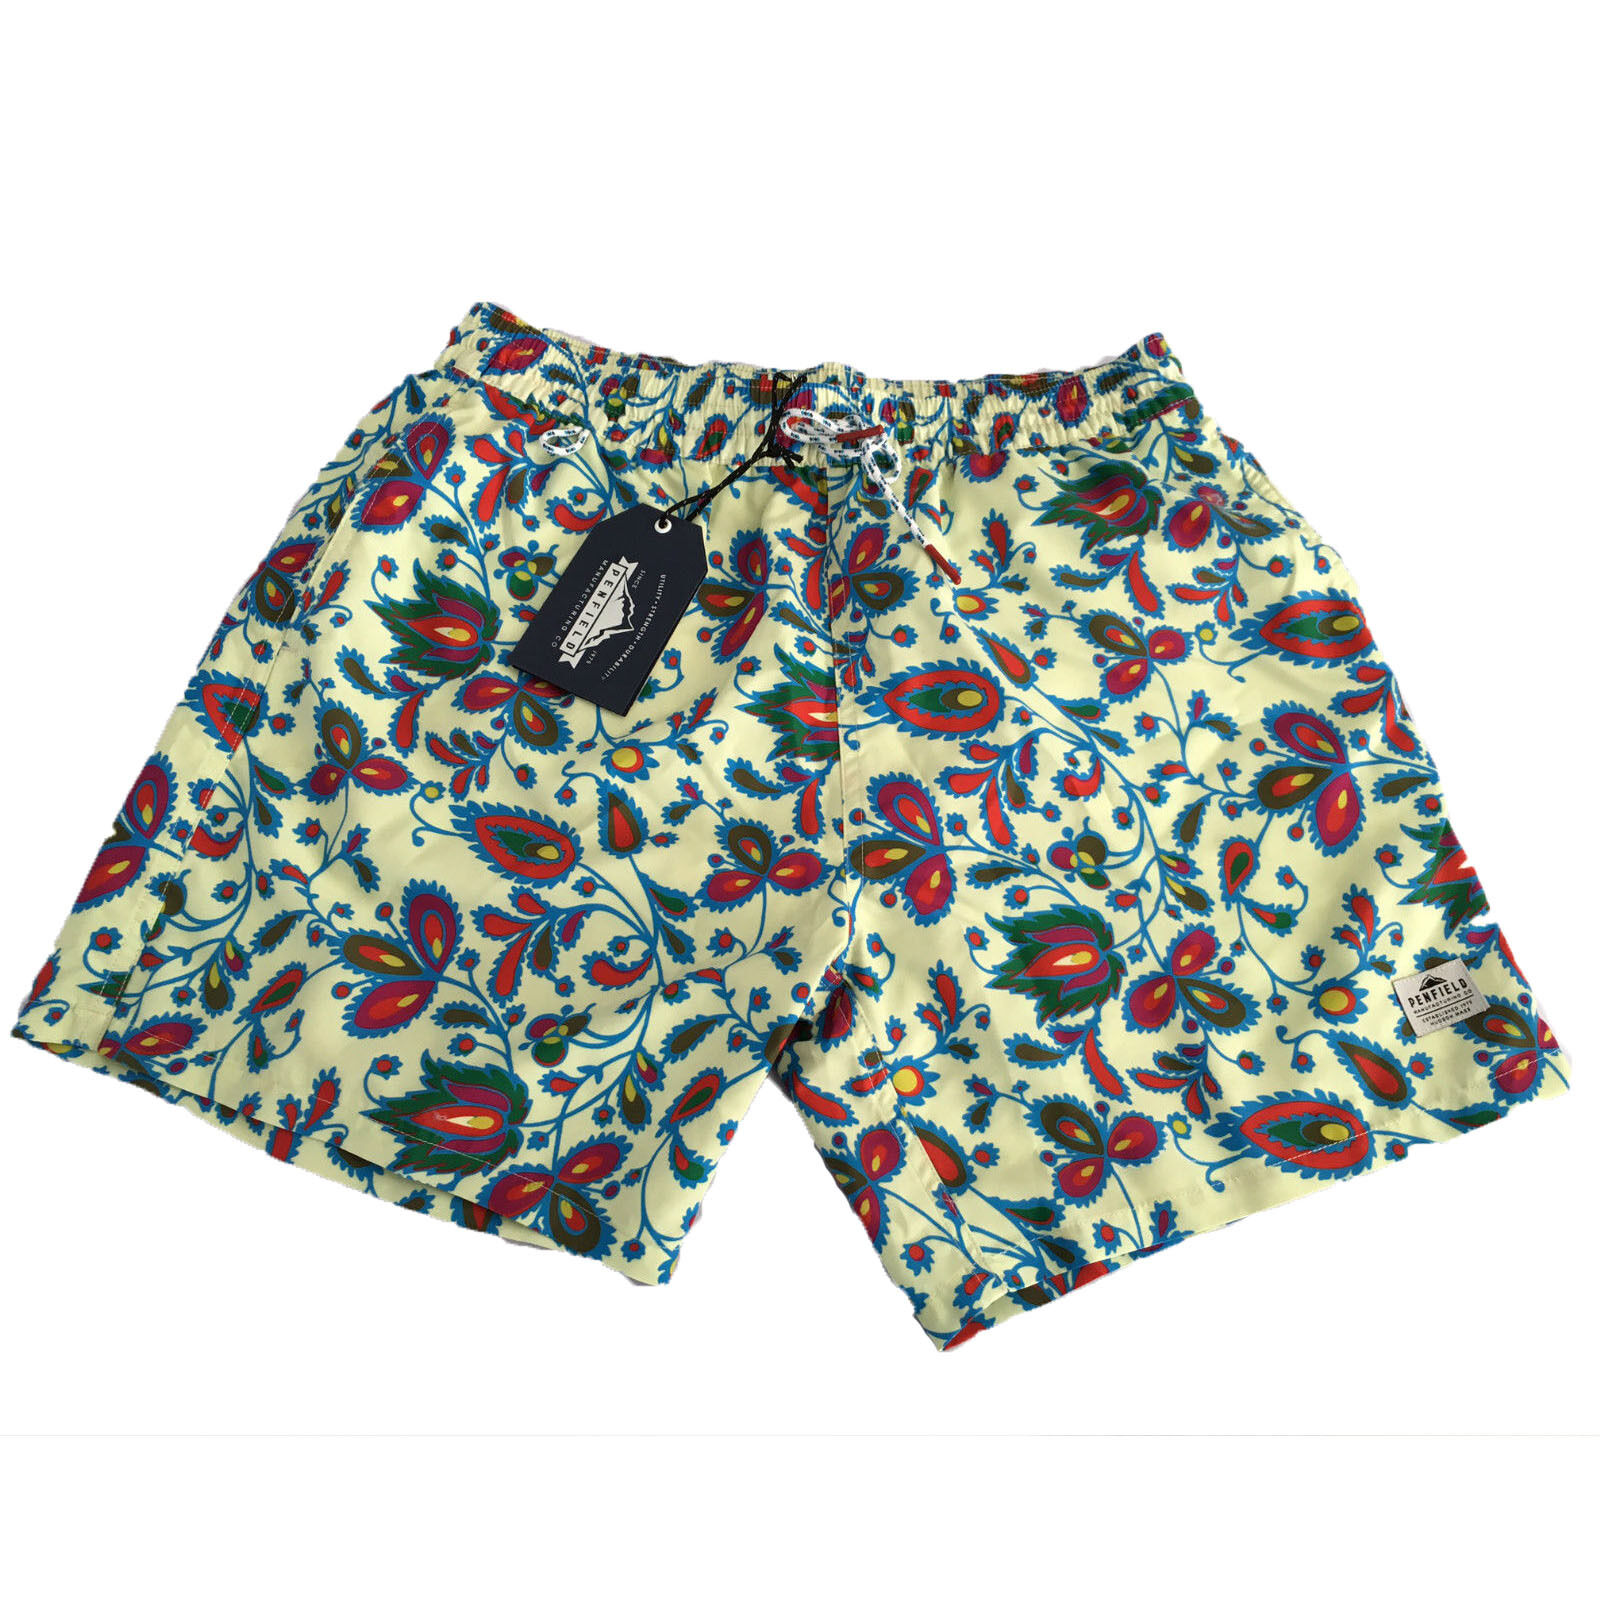 PENFIELD men's swimwear mod SEAL SWIMMER FLORAL SHORT 100% polyester